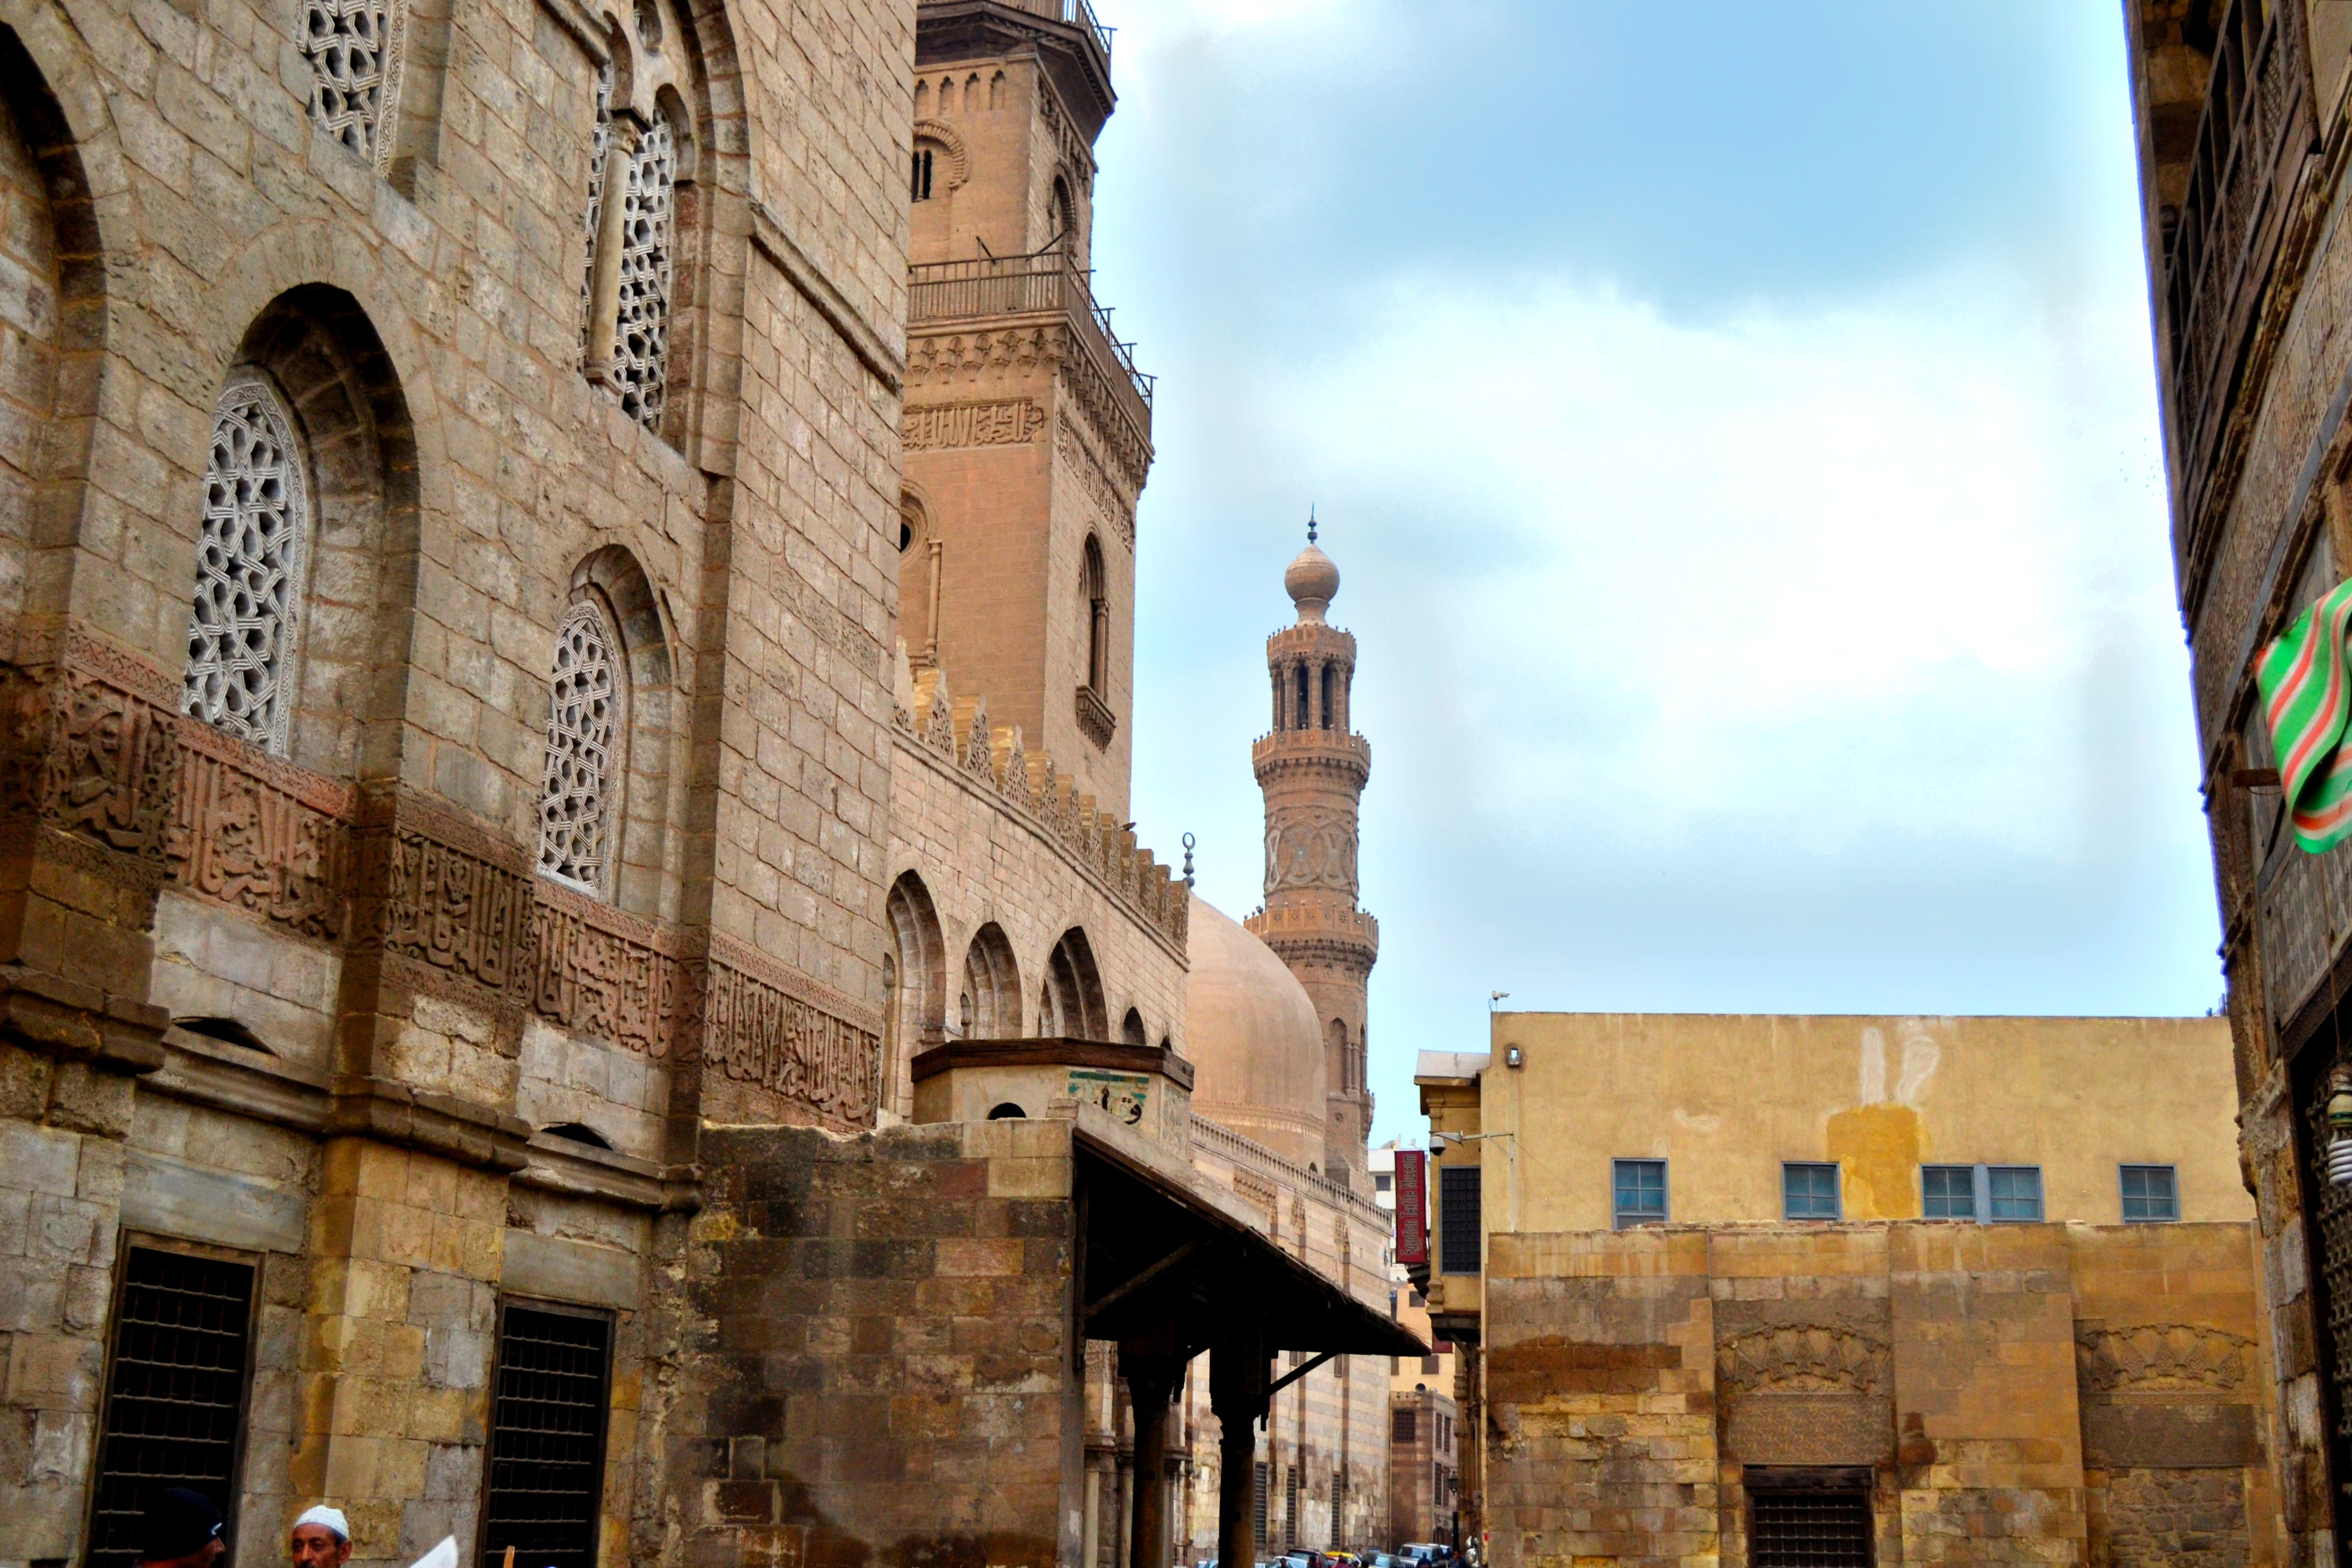 The Islamic architecture coupled with the bustling markets sends you back in time.